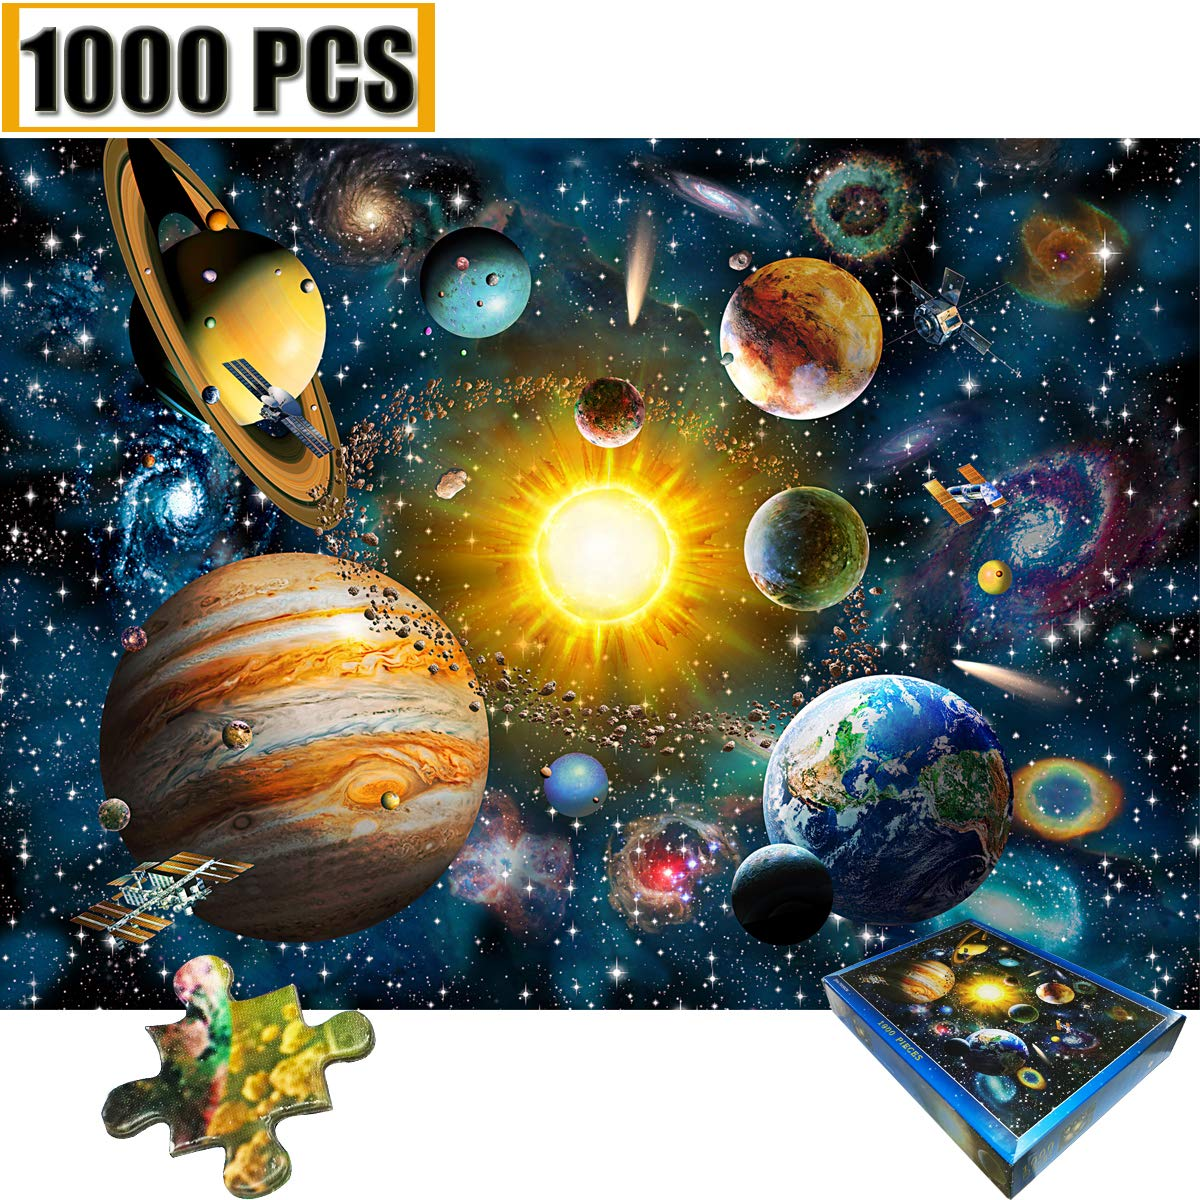 Jigsaw Puzzles 1000 Pieces Space Universe Planet Jigsaw Puzzle 1000 PCS Jigsaw Puzzles Spacecraft Galaxy Stars Artwork Art Teen Adult Children Large Size Toy Educational Games Solar System